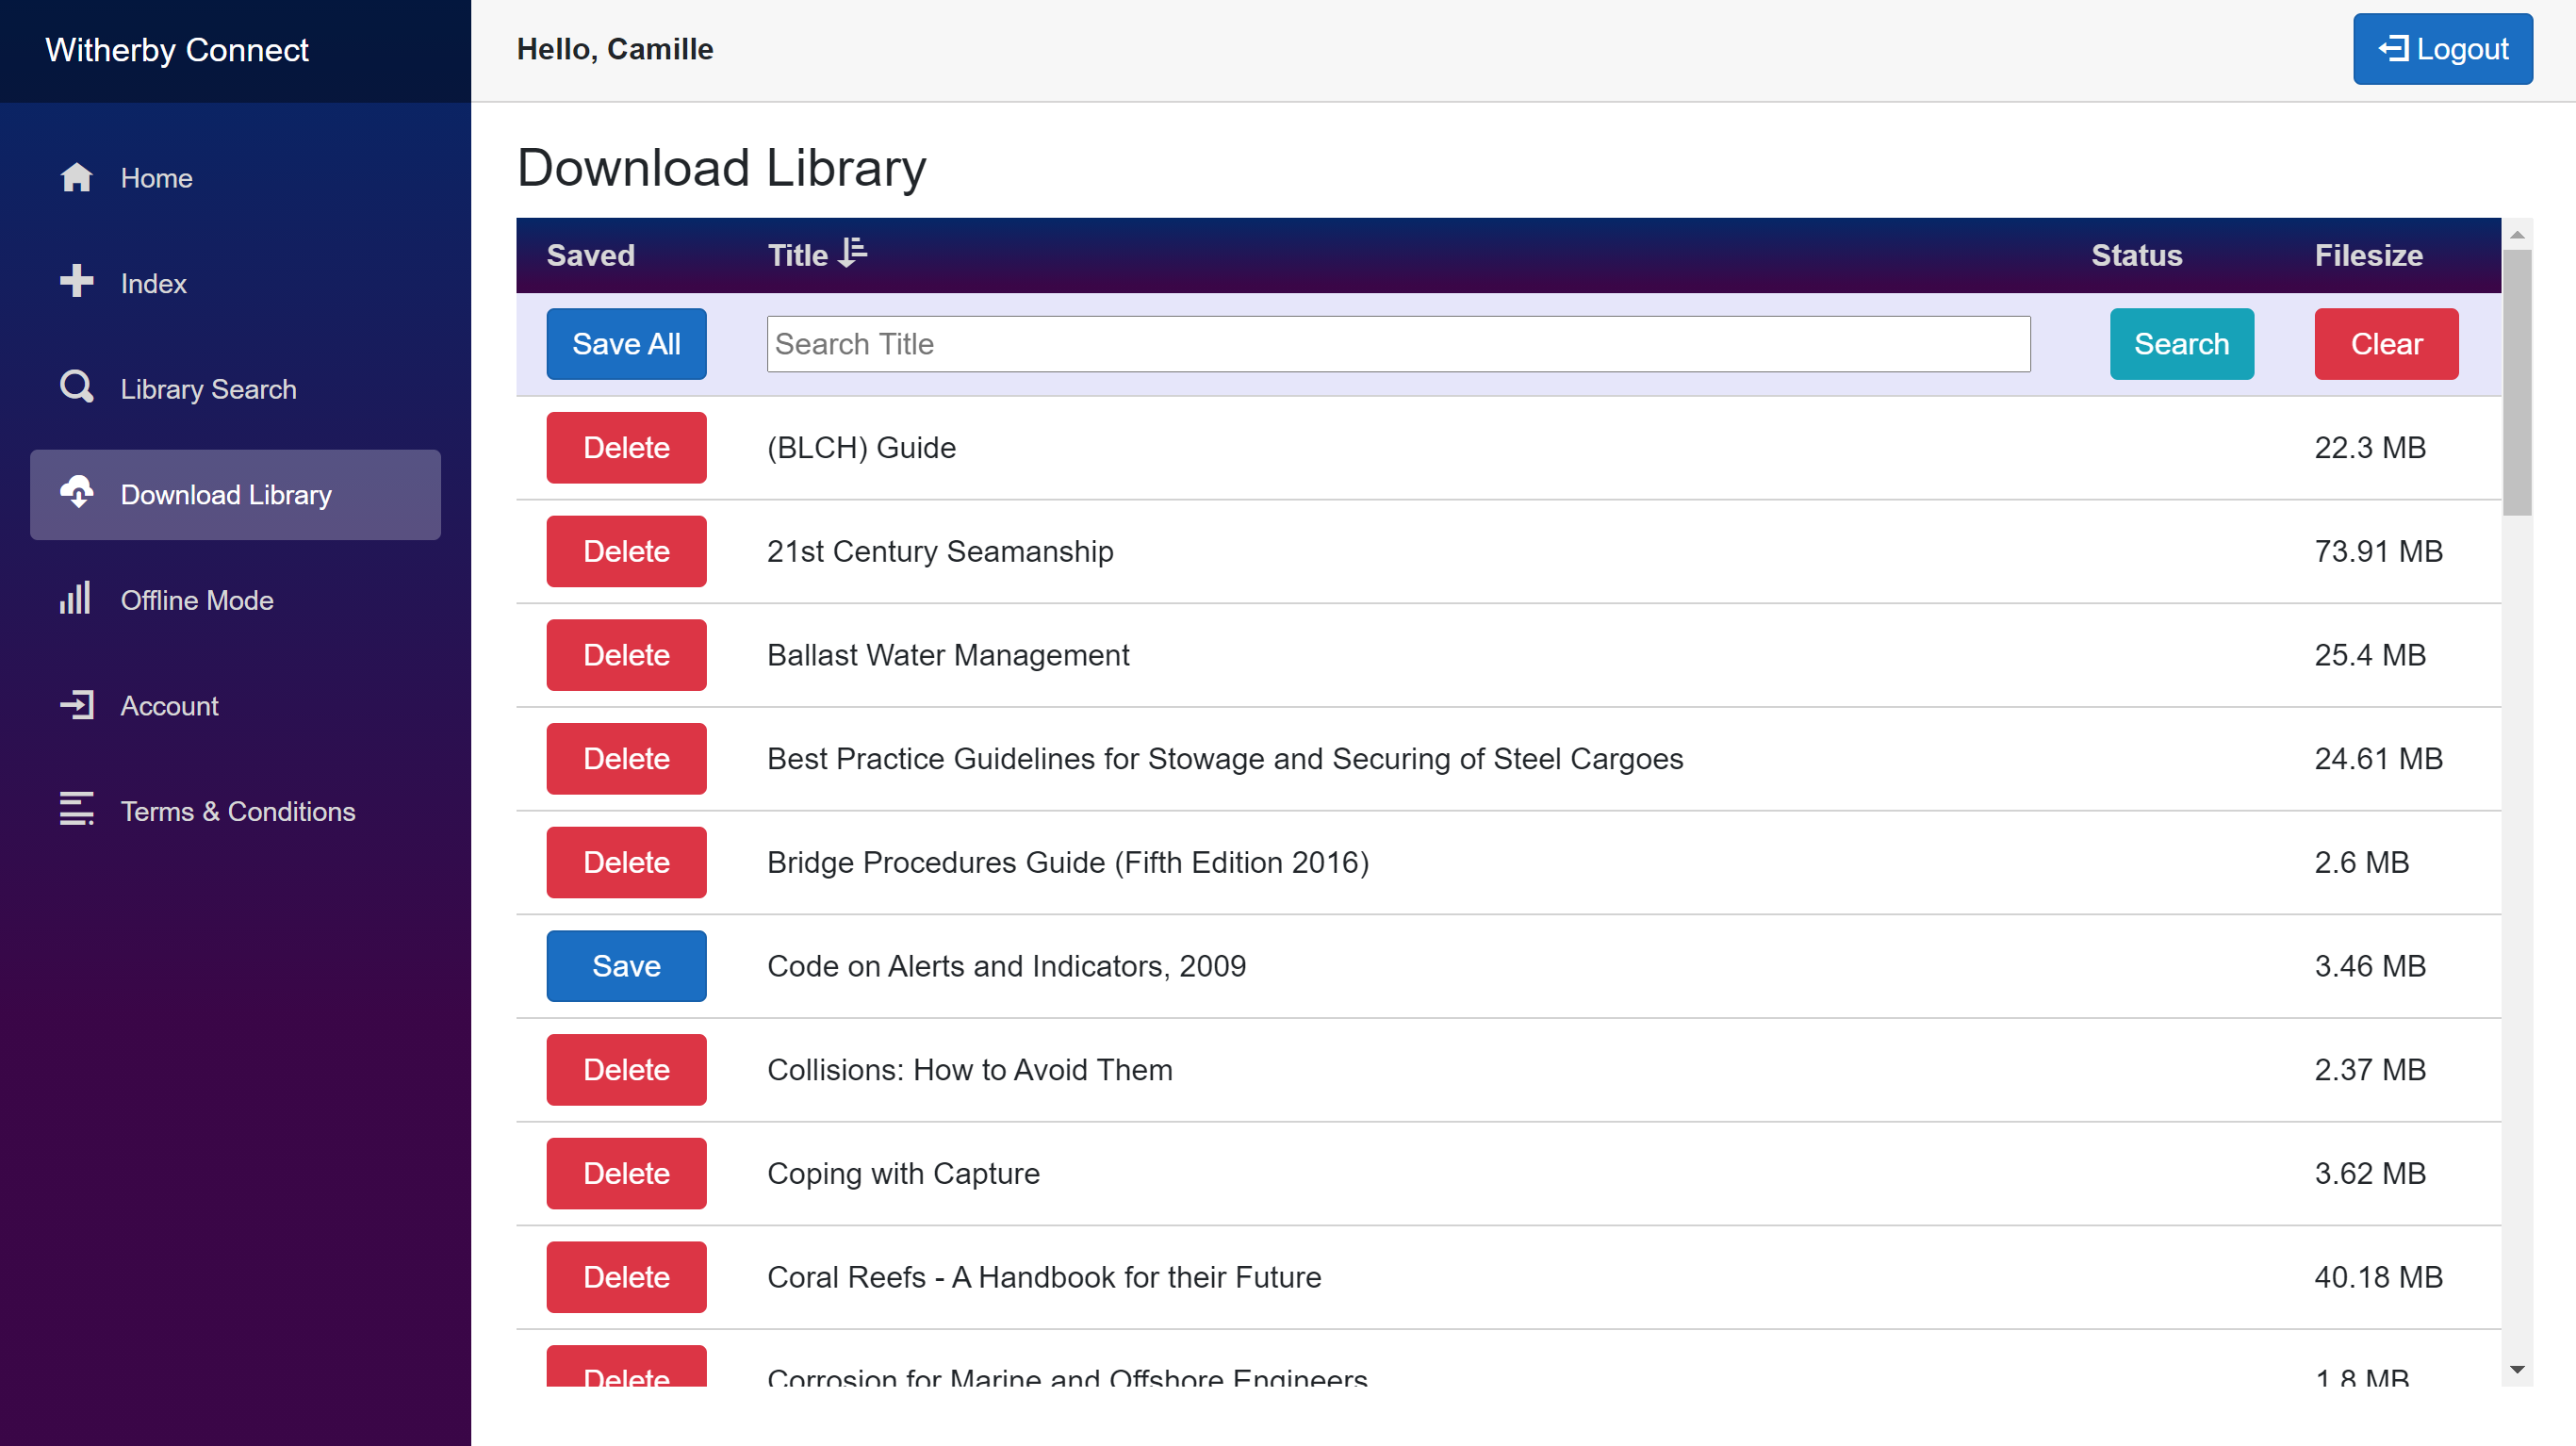 downloadlibrary.png